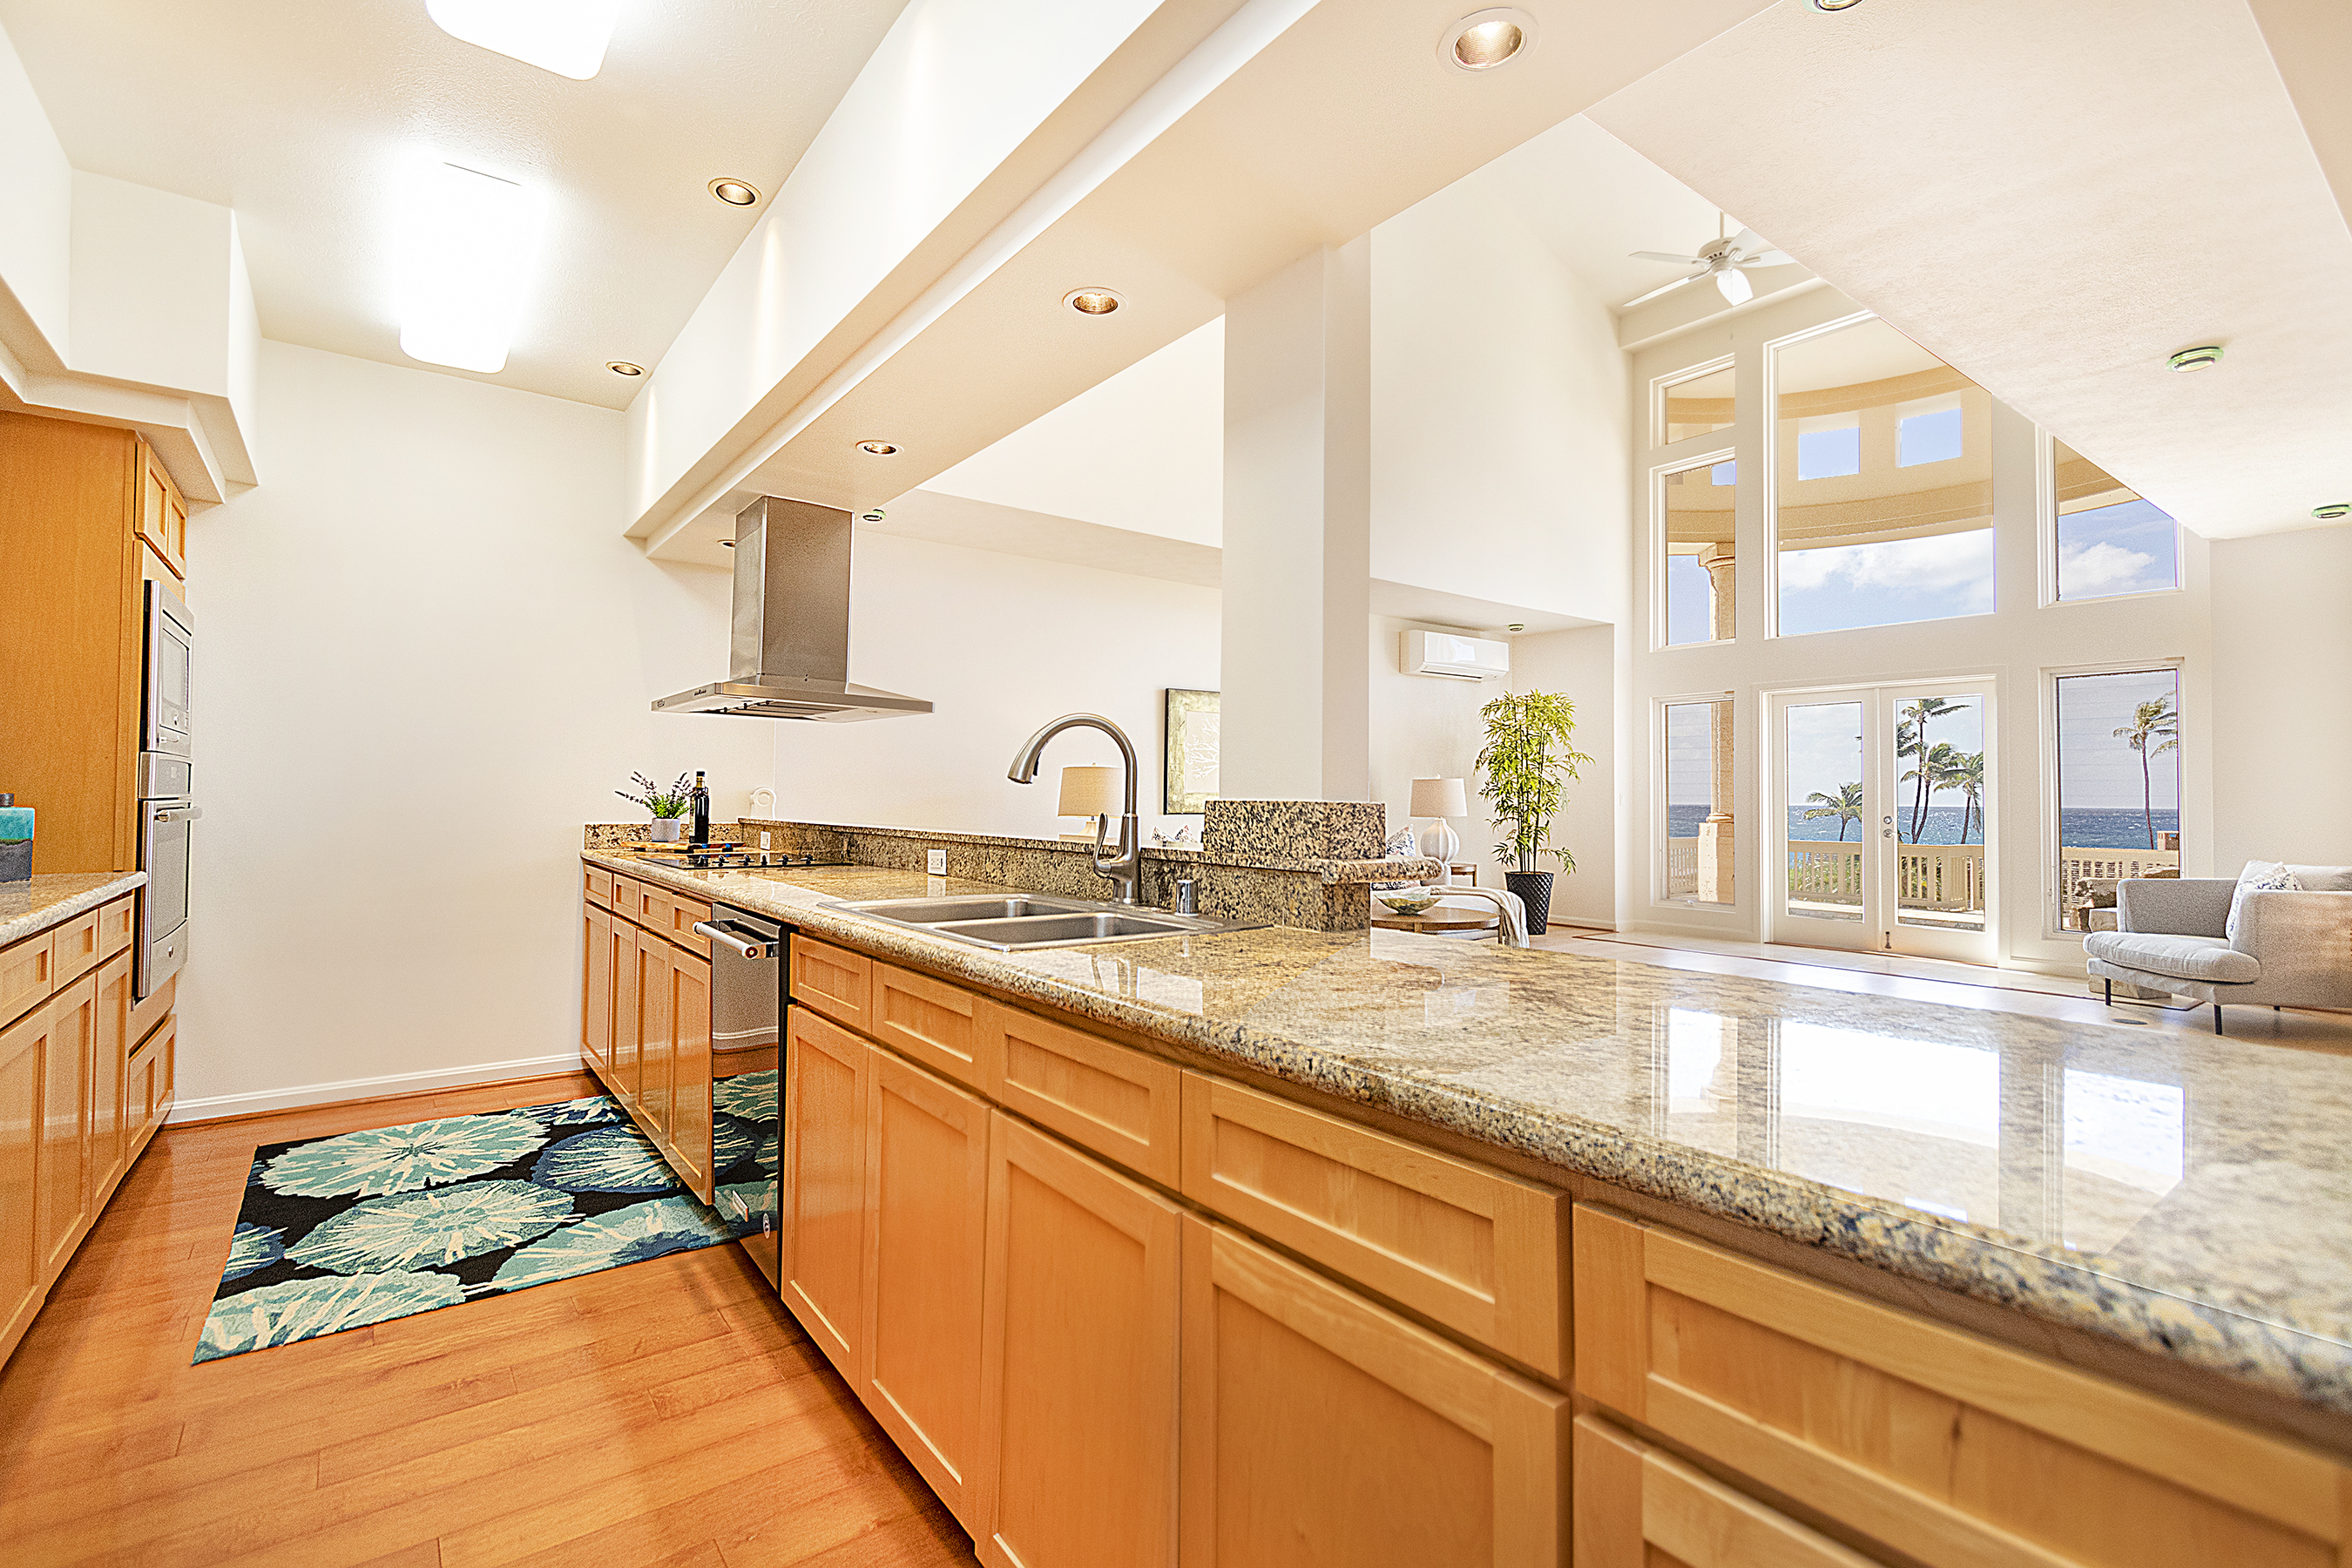 Kitchen at Living Room at 4323 Kaikoo Place, Honolulu, HI 96816